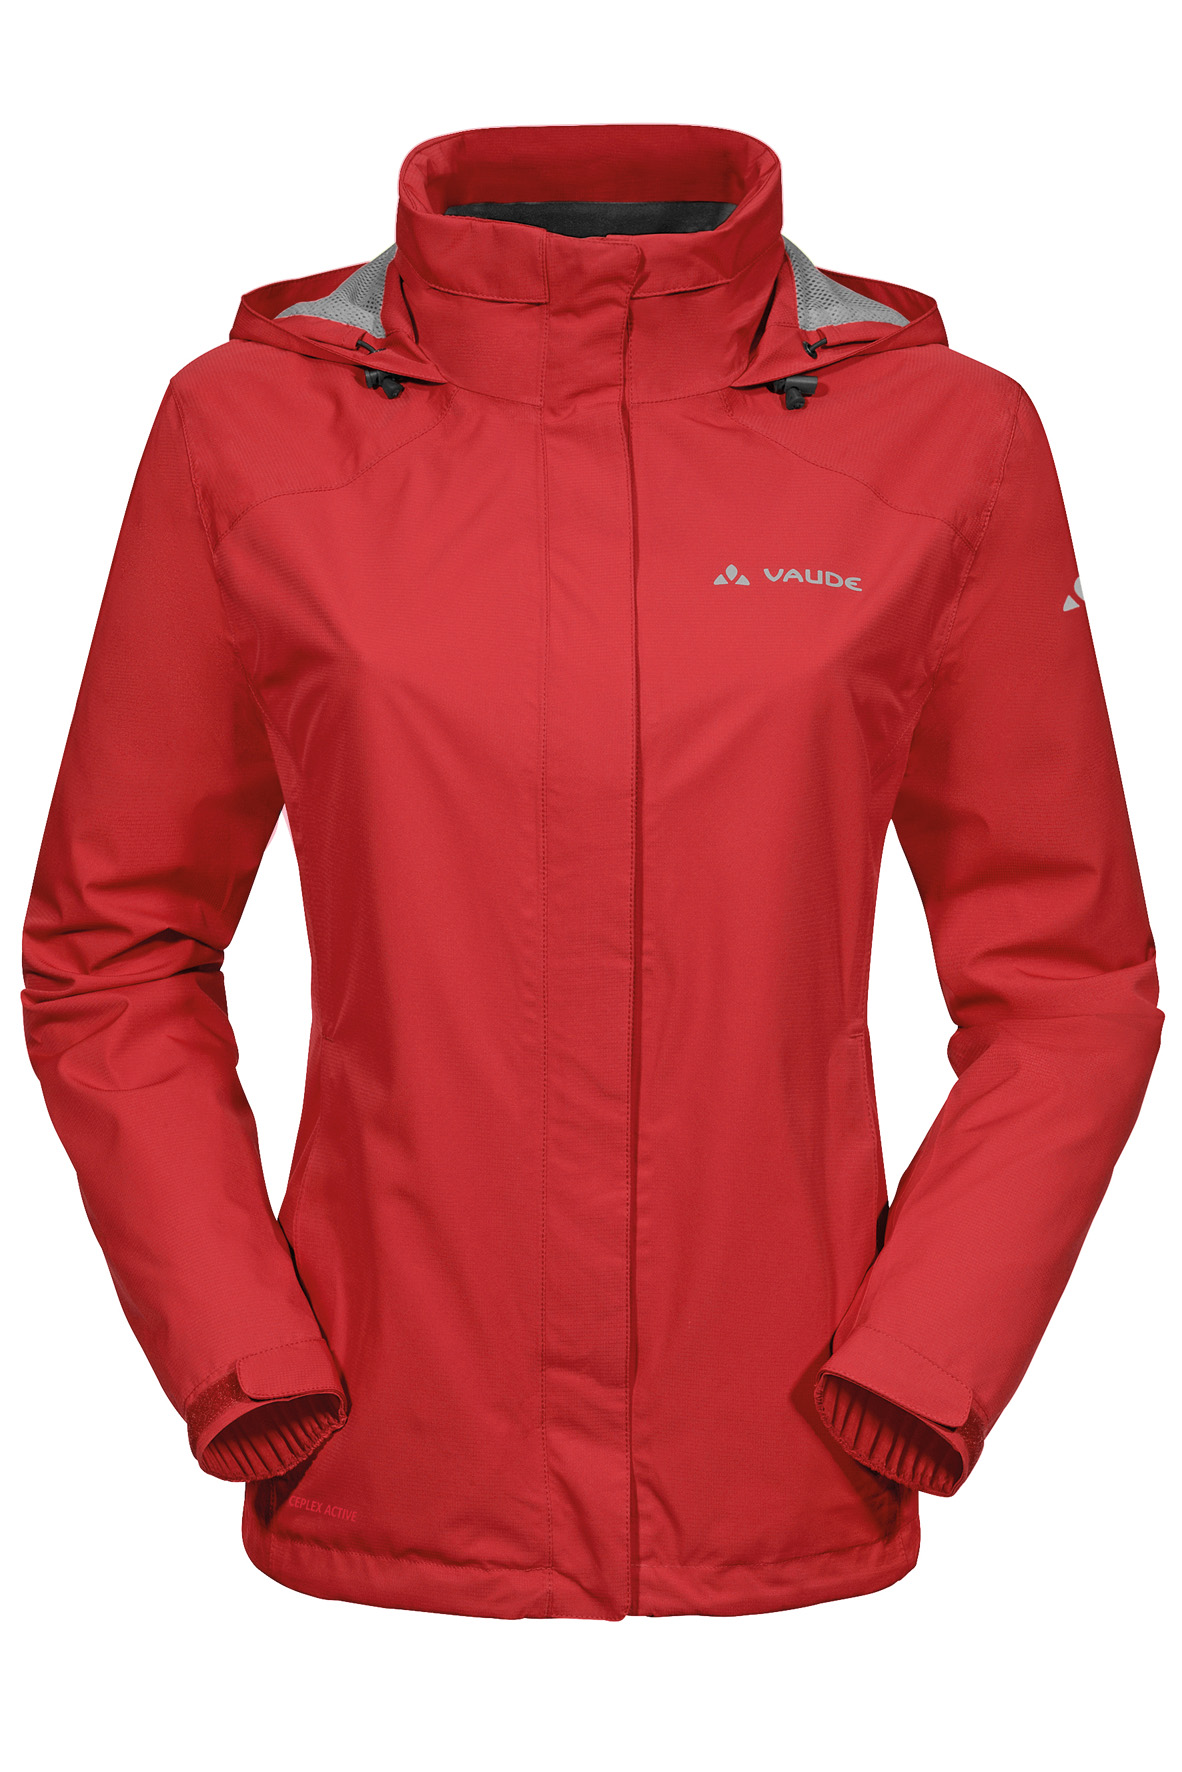 VAUDE Women´s Escape Bike Light Jacket red Größe 50 - schneider-sports